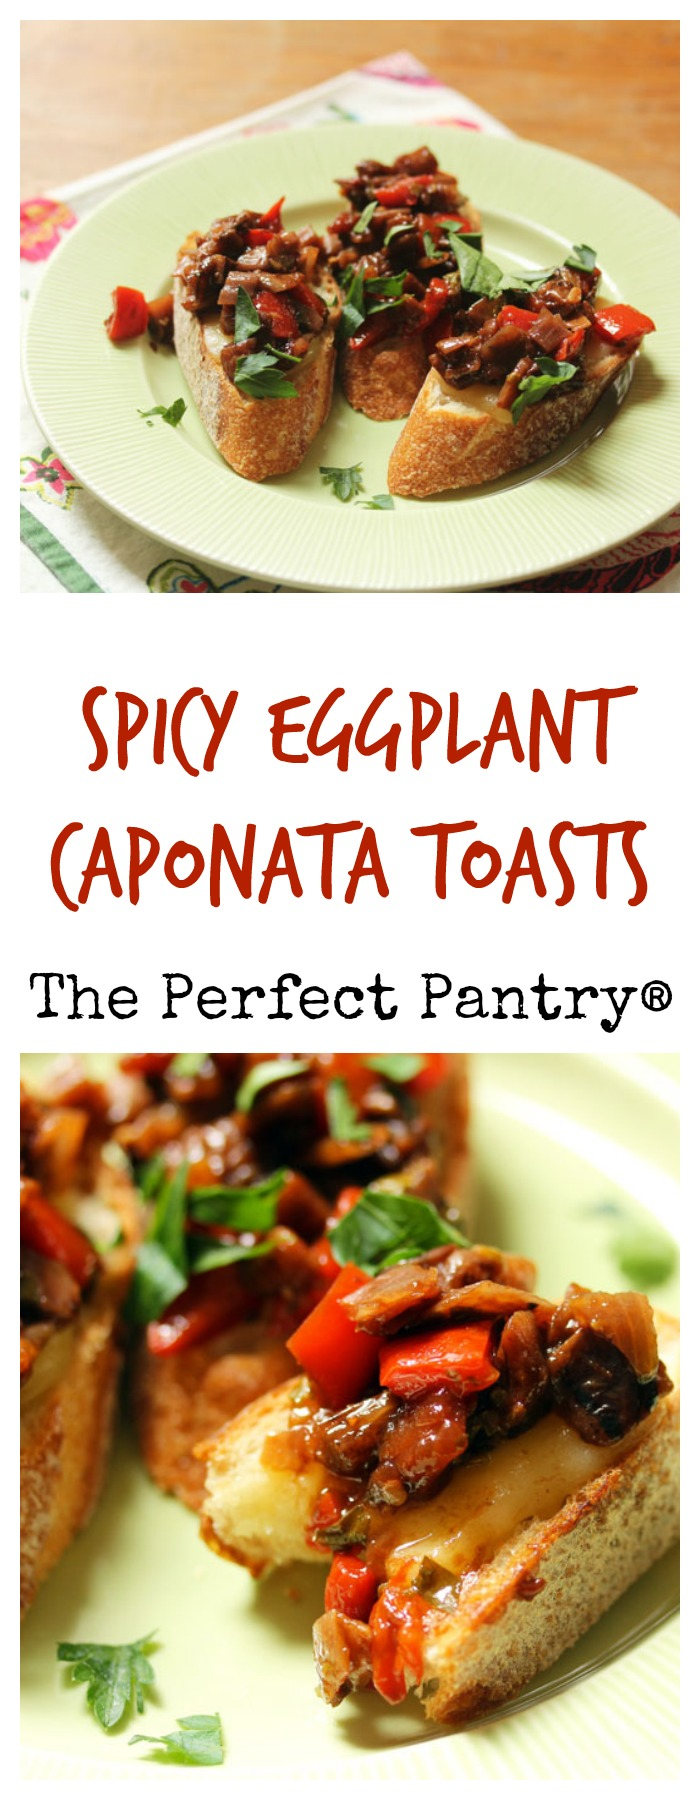 Spicy eggplant caponata toasts, an exciting appetizer. #vegetarian